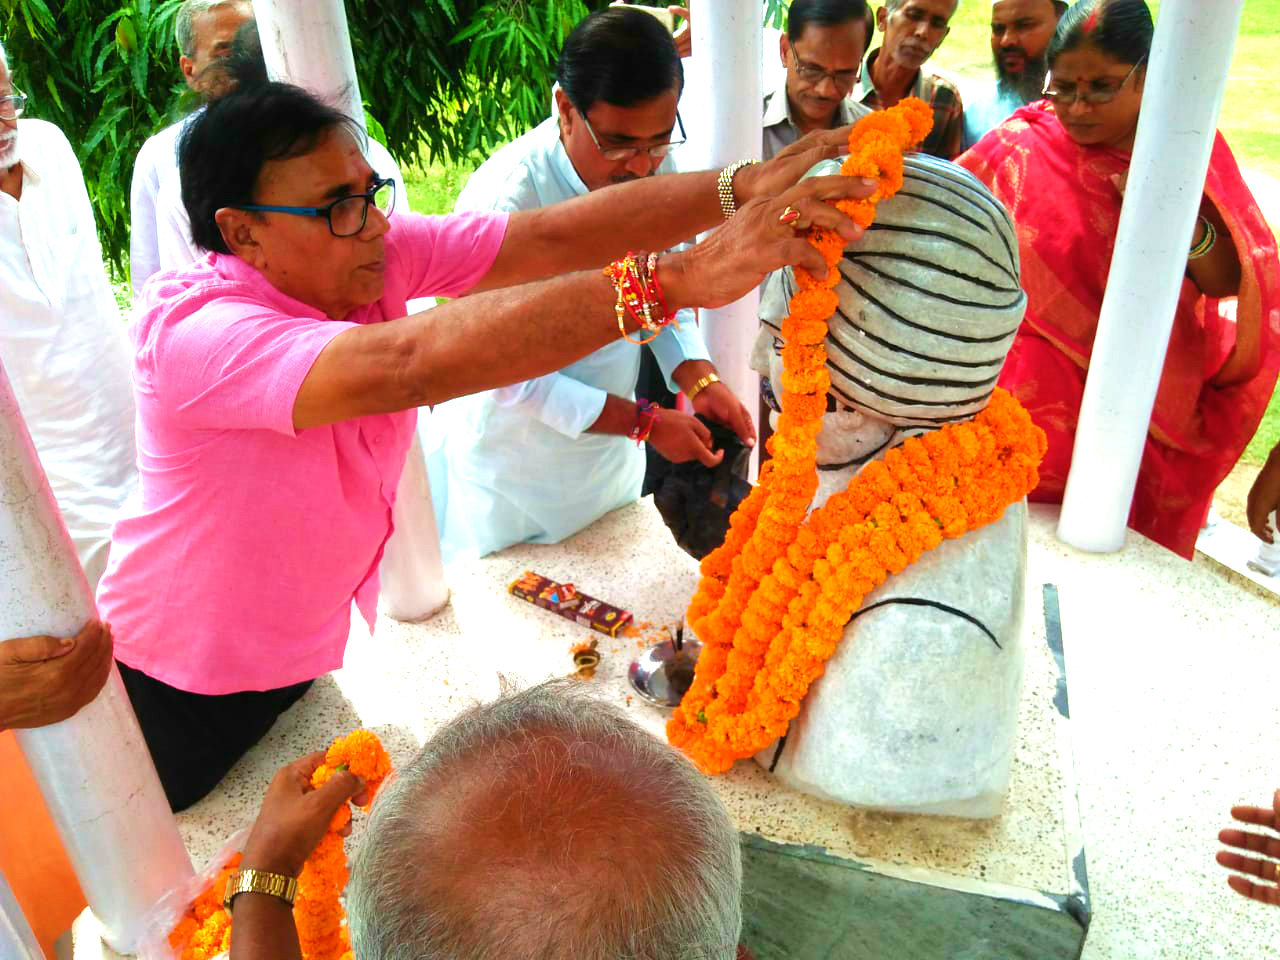 Samajsevi Dr.Bhupendra Madhepuri paying floral tribute to the Great Freedom Fighter Babu Rasbihari Lal Mandal along with Dr.A.K.Mandal, Prof.Prabhash Kumar Yadav, HM & Former HM, School Teachers at the campus of Rasbihari High School, Madhepura.